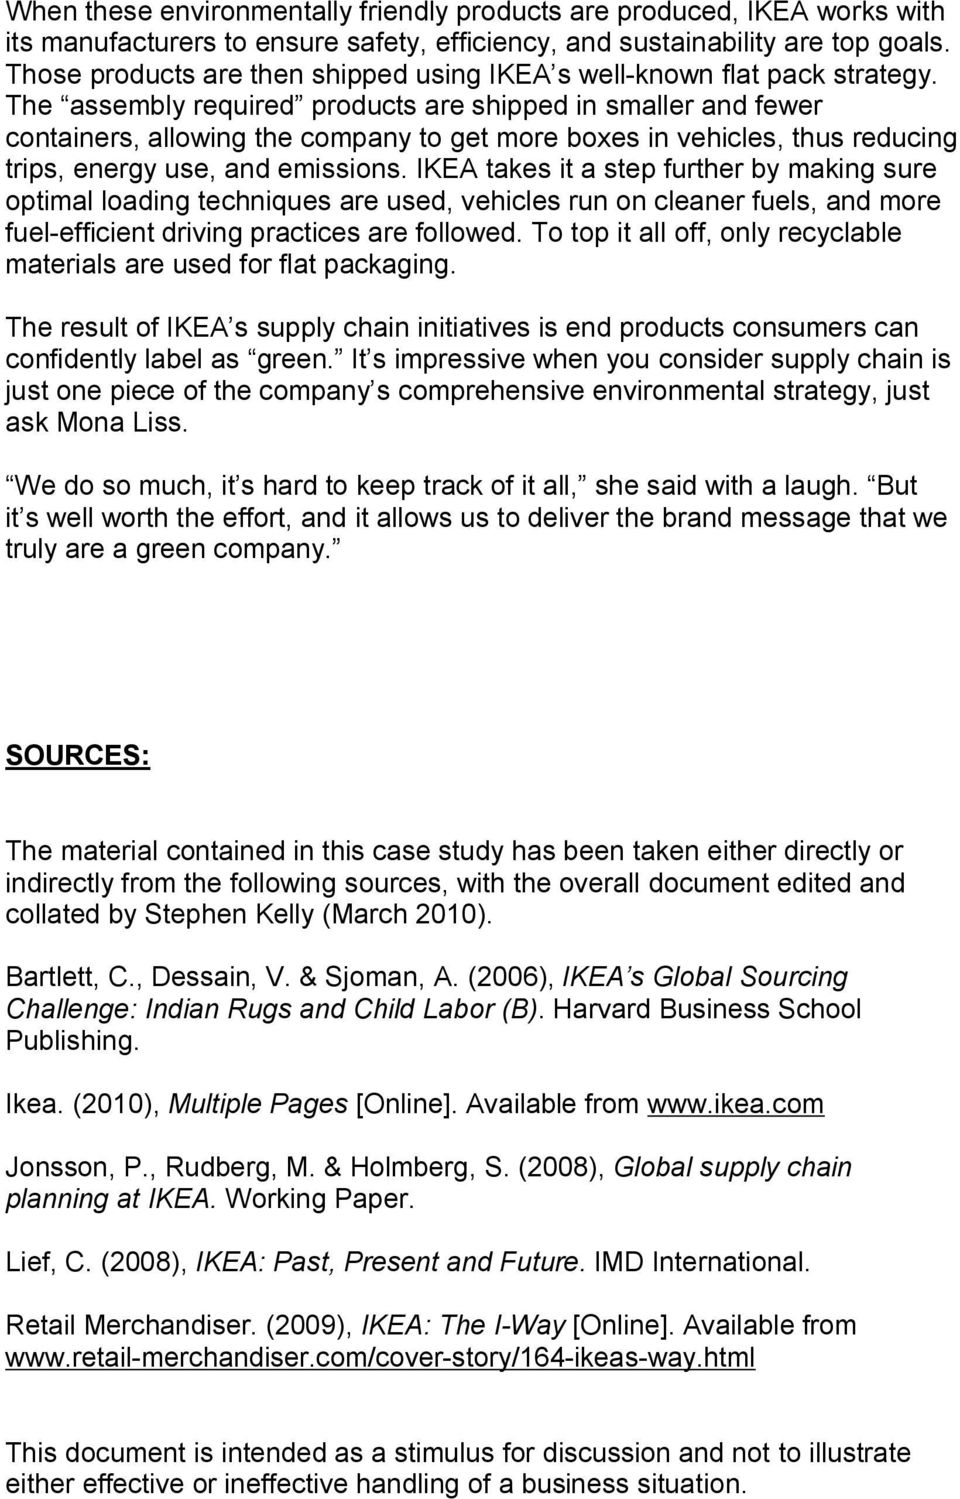 Ikea's Global Sourcing Challenge